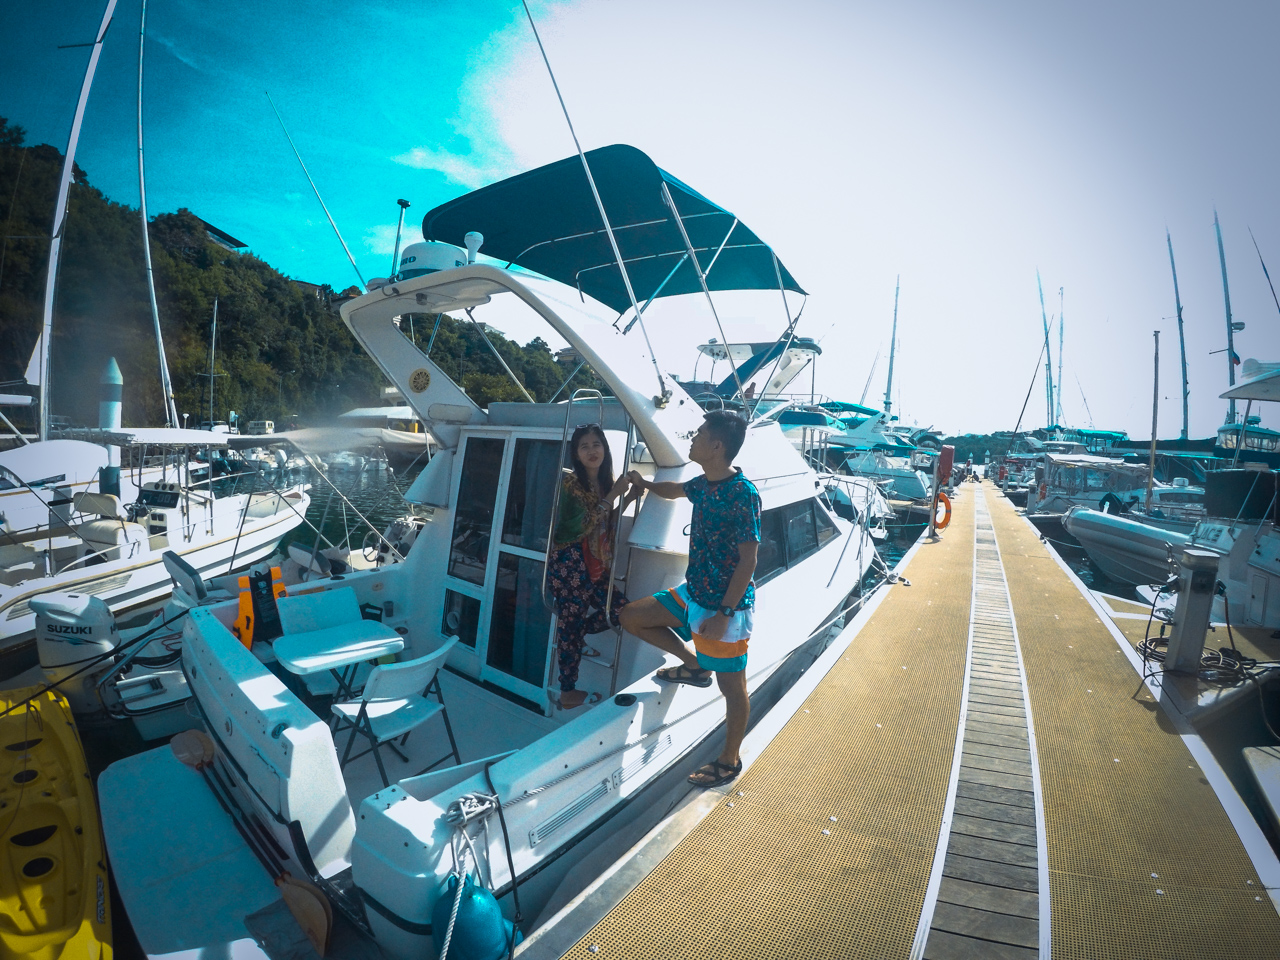 Tom's Cruise: Yacht Staycation - https://thejerny.com